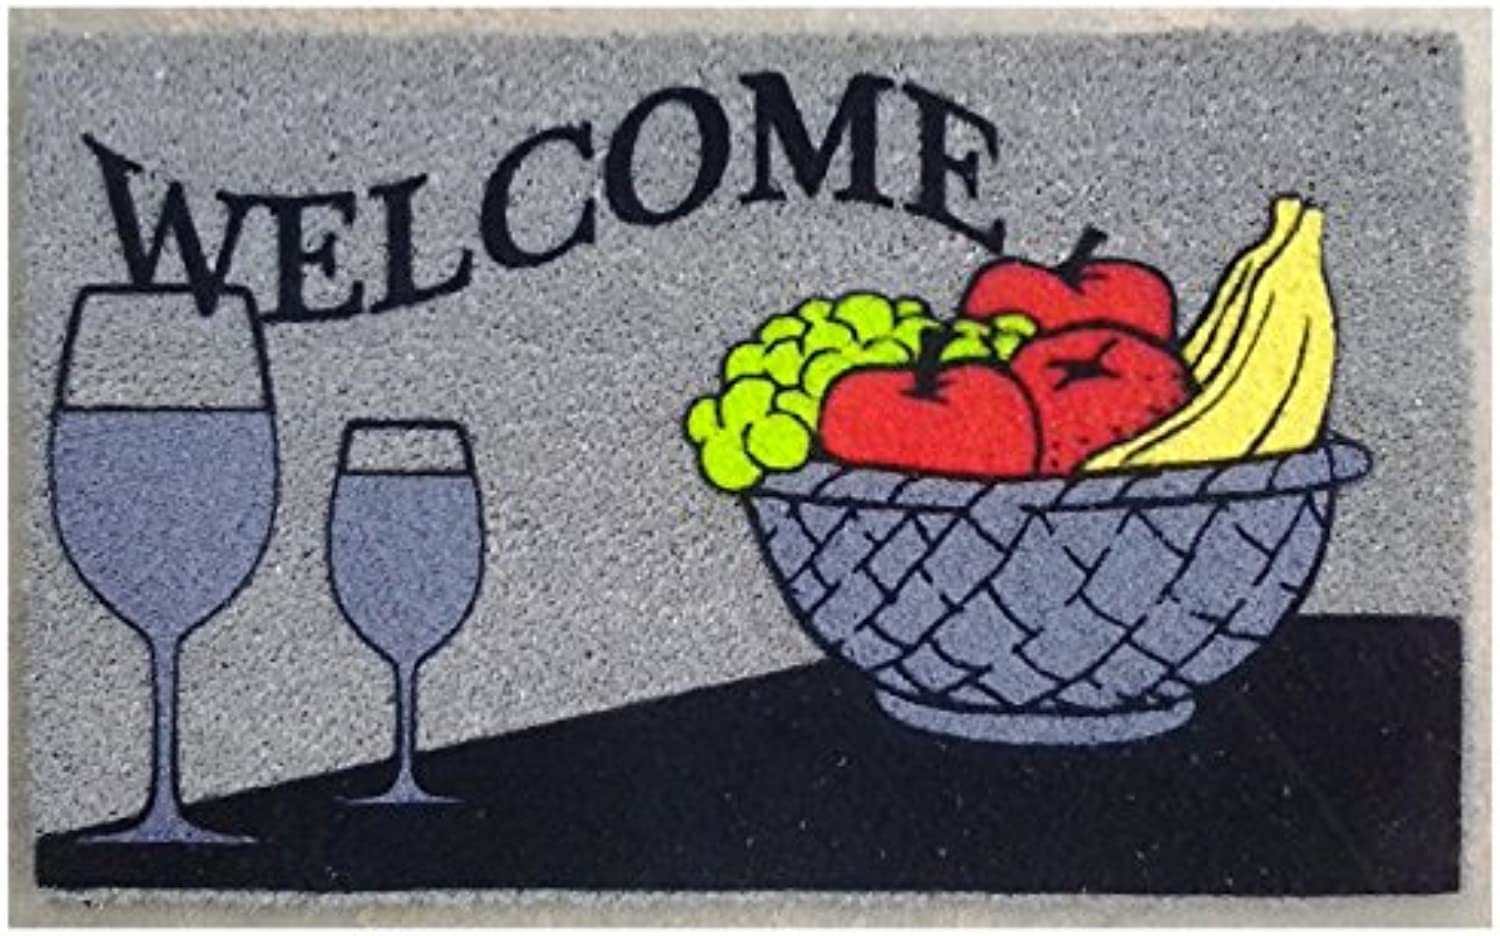 Imports Decor 543PVCF Welcome Wine Vinyl Backed Coir Doormat with Flocked Pattern, 30 x 18